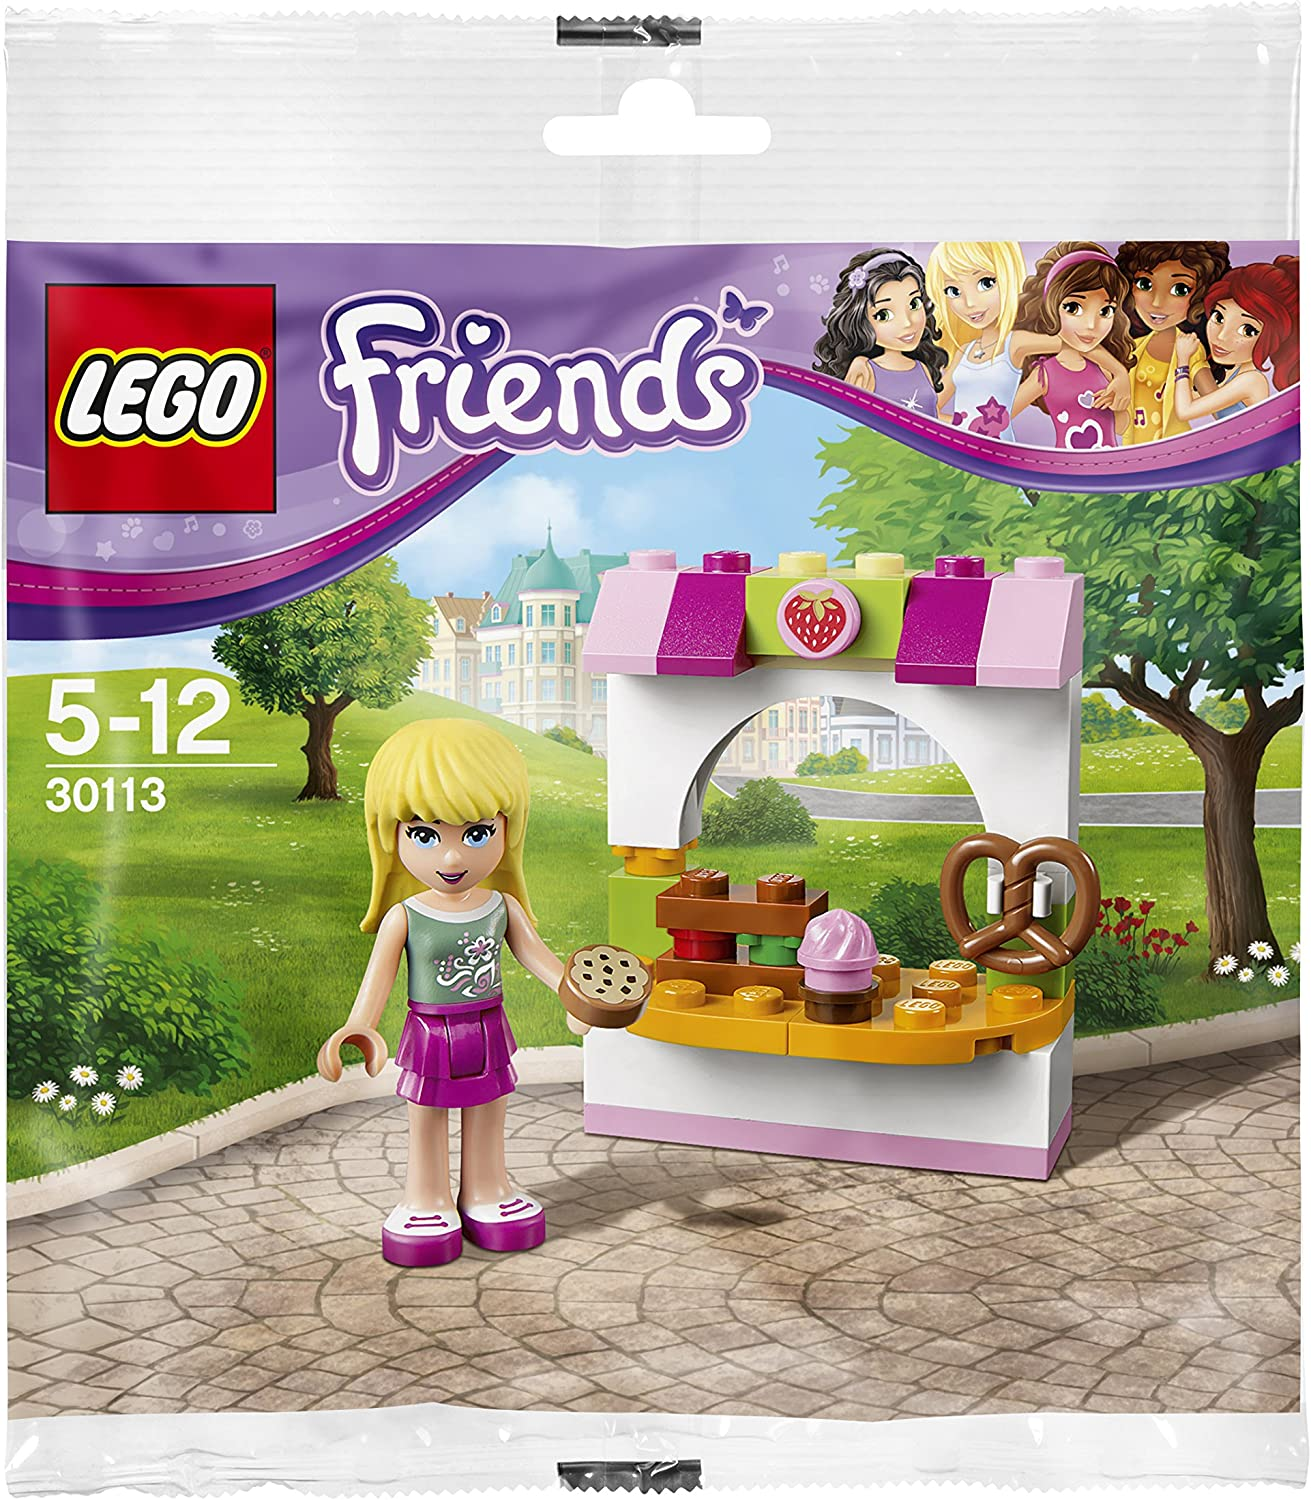 LEGO Friends: Stephanie's Bakery Stand Set 30113 (Bagged)